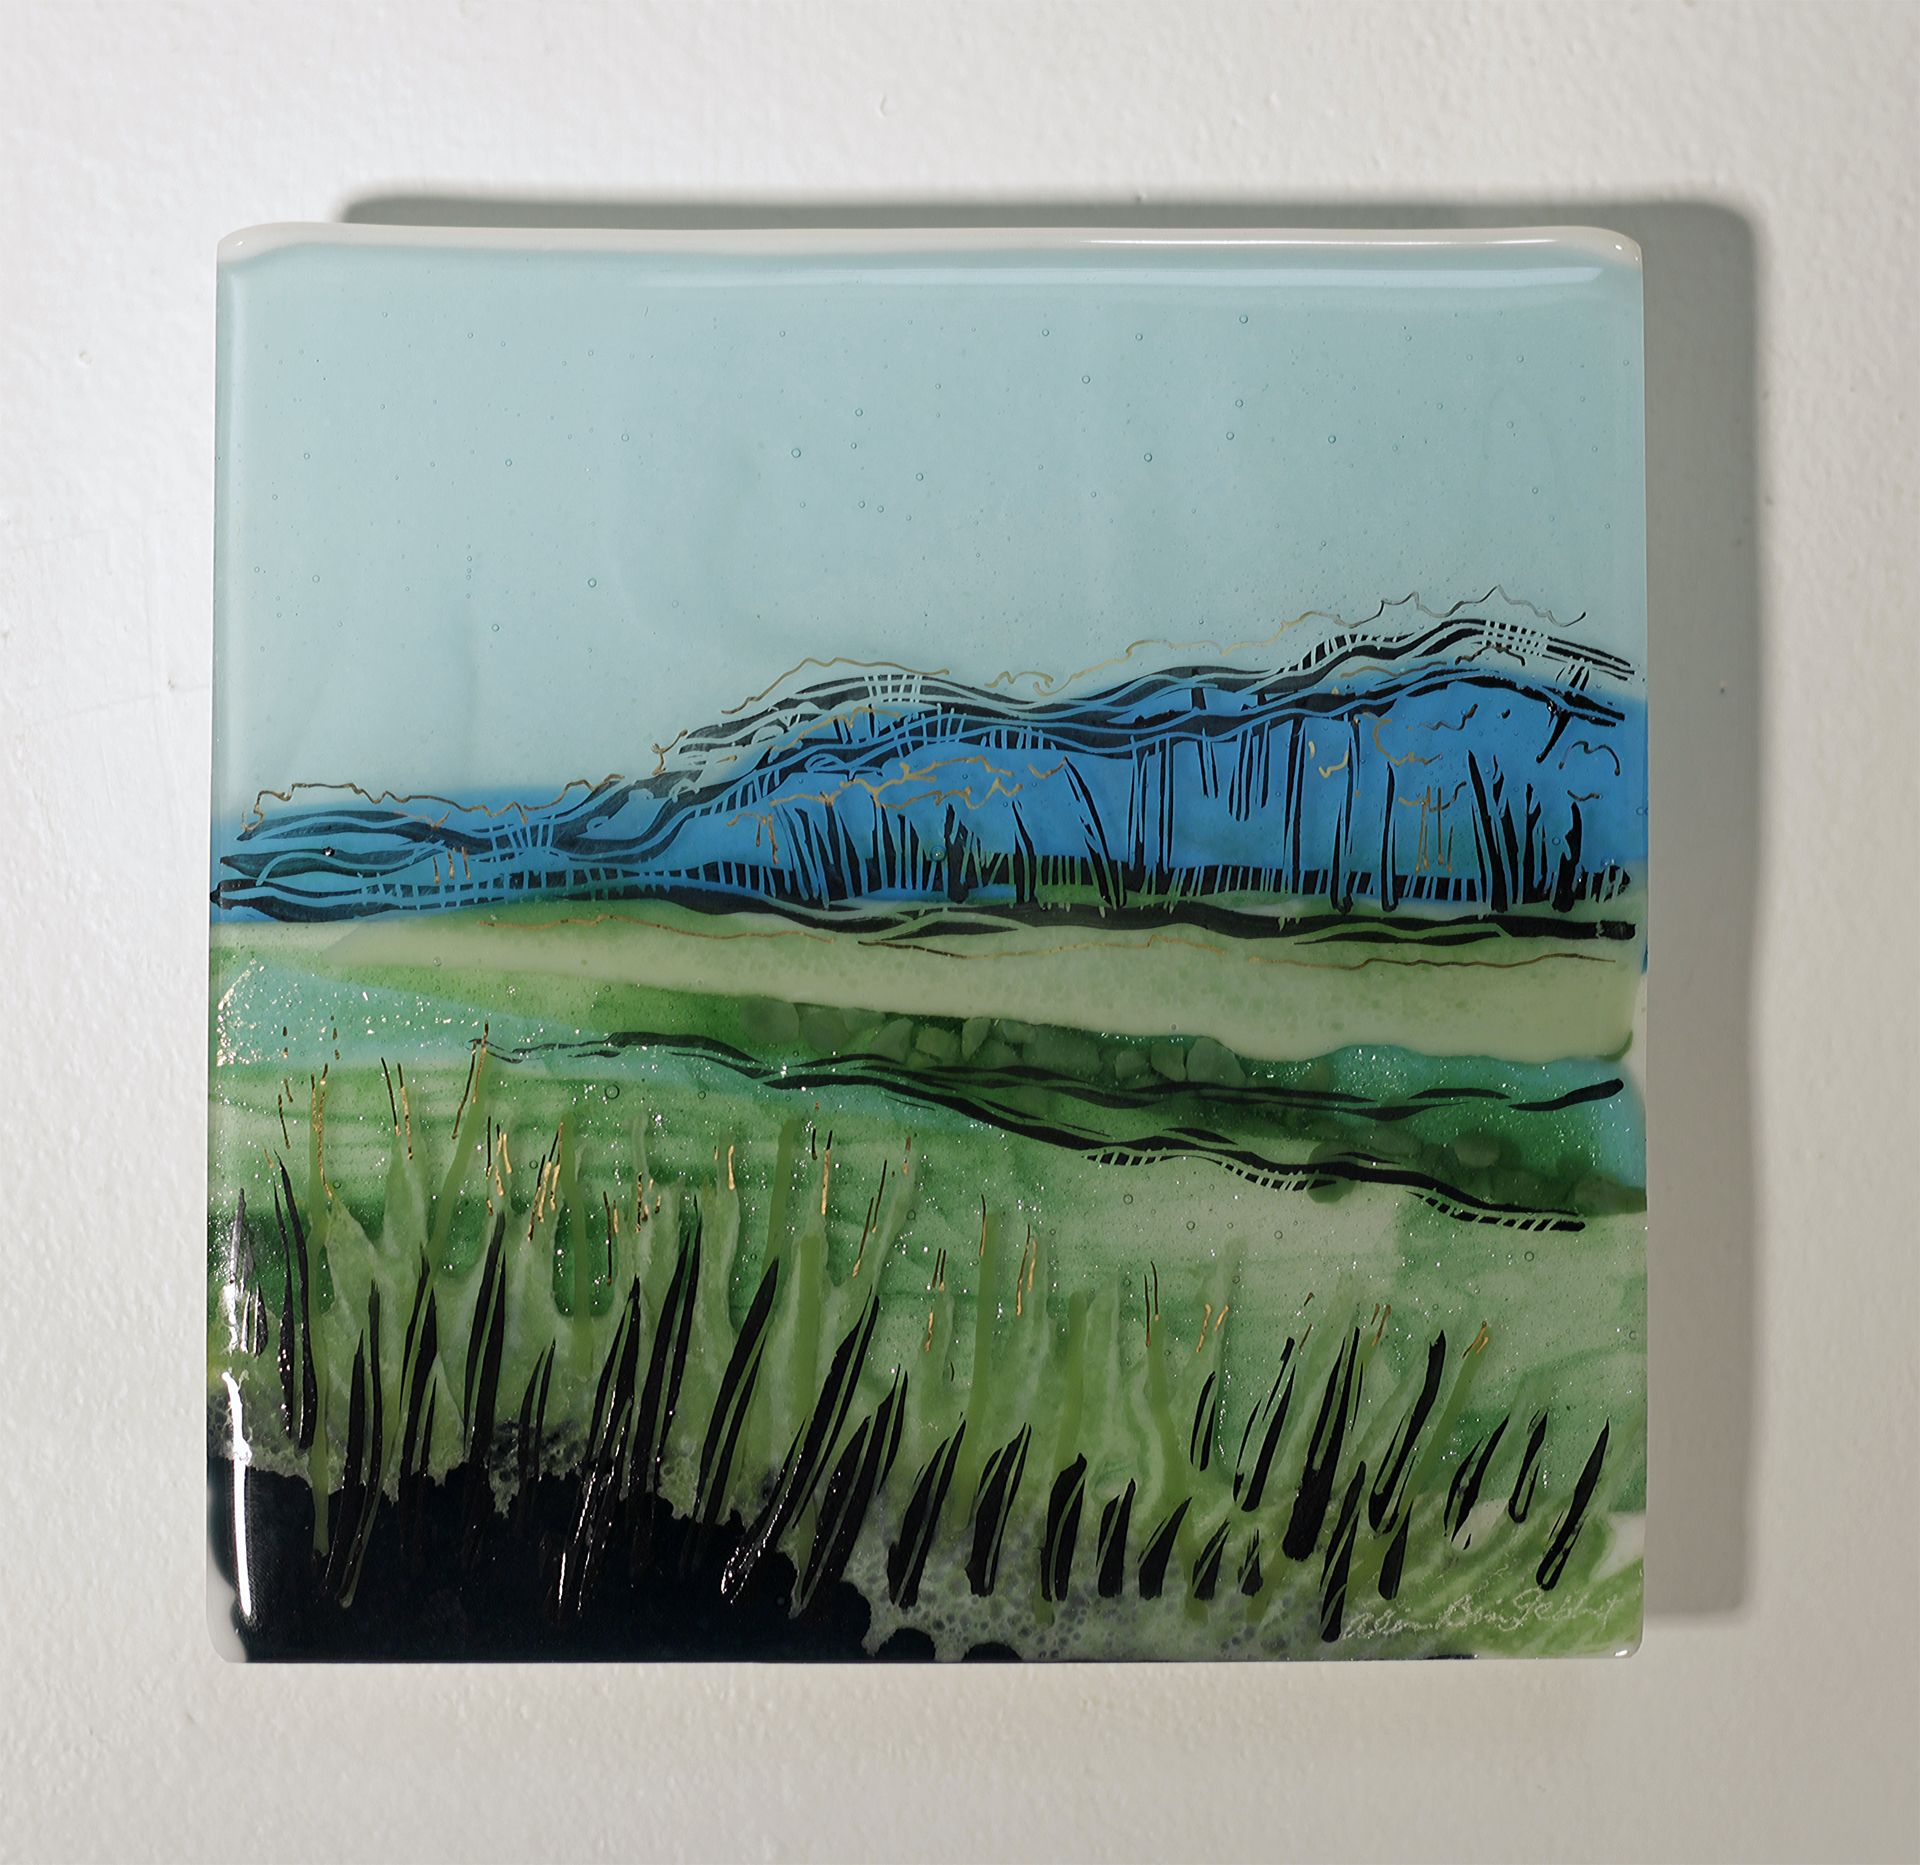 """Silent The Voice of People, Fused Glass Panel, 6""""x6""""x1"""" by Alice Benvie Gebhart"""